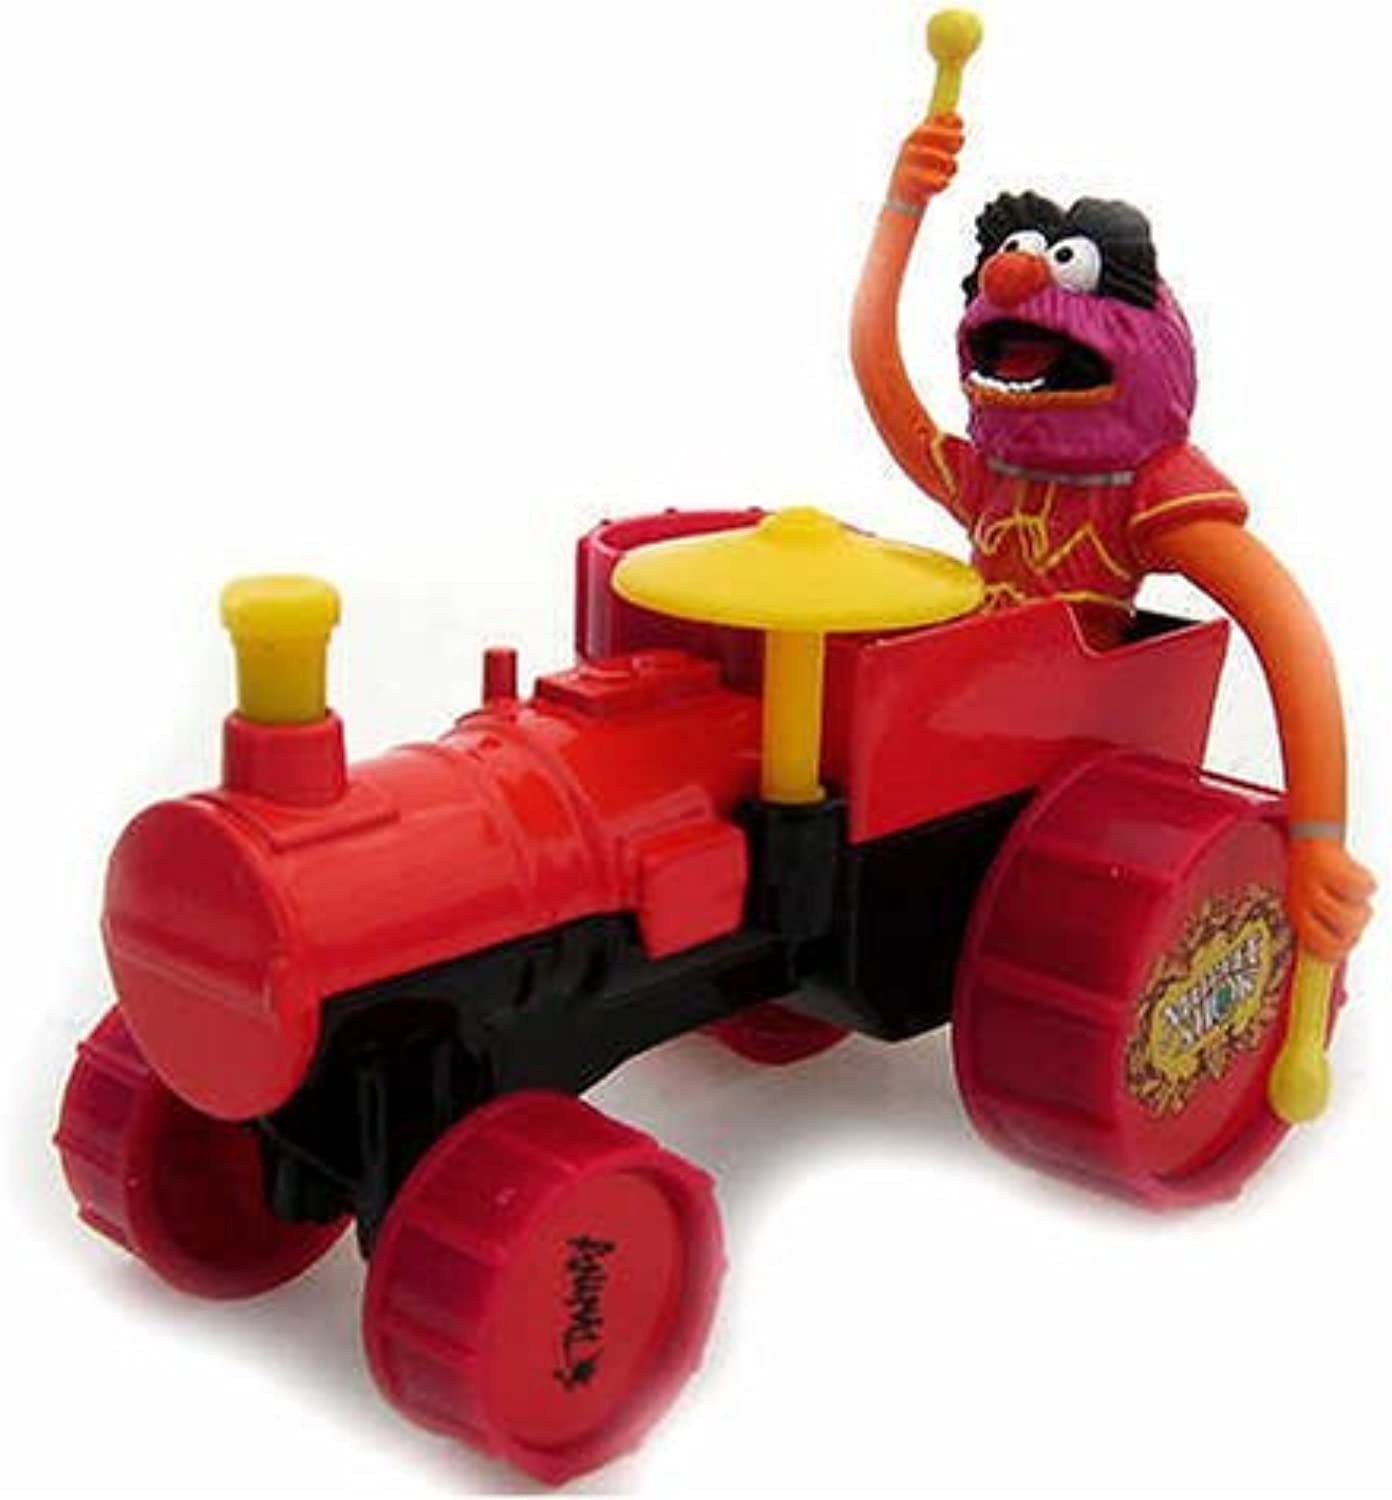 Muppet's Collectible Die-cast Figure - Animal on Tractor by Corgi by Corgi